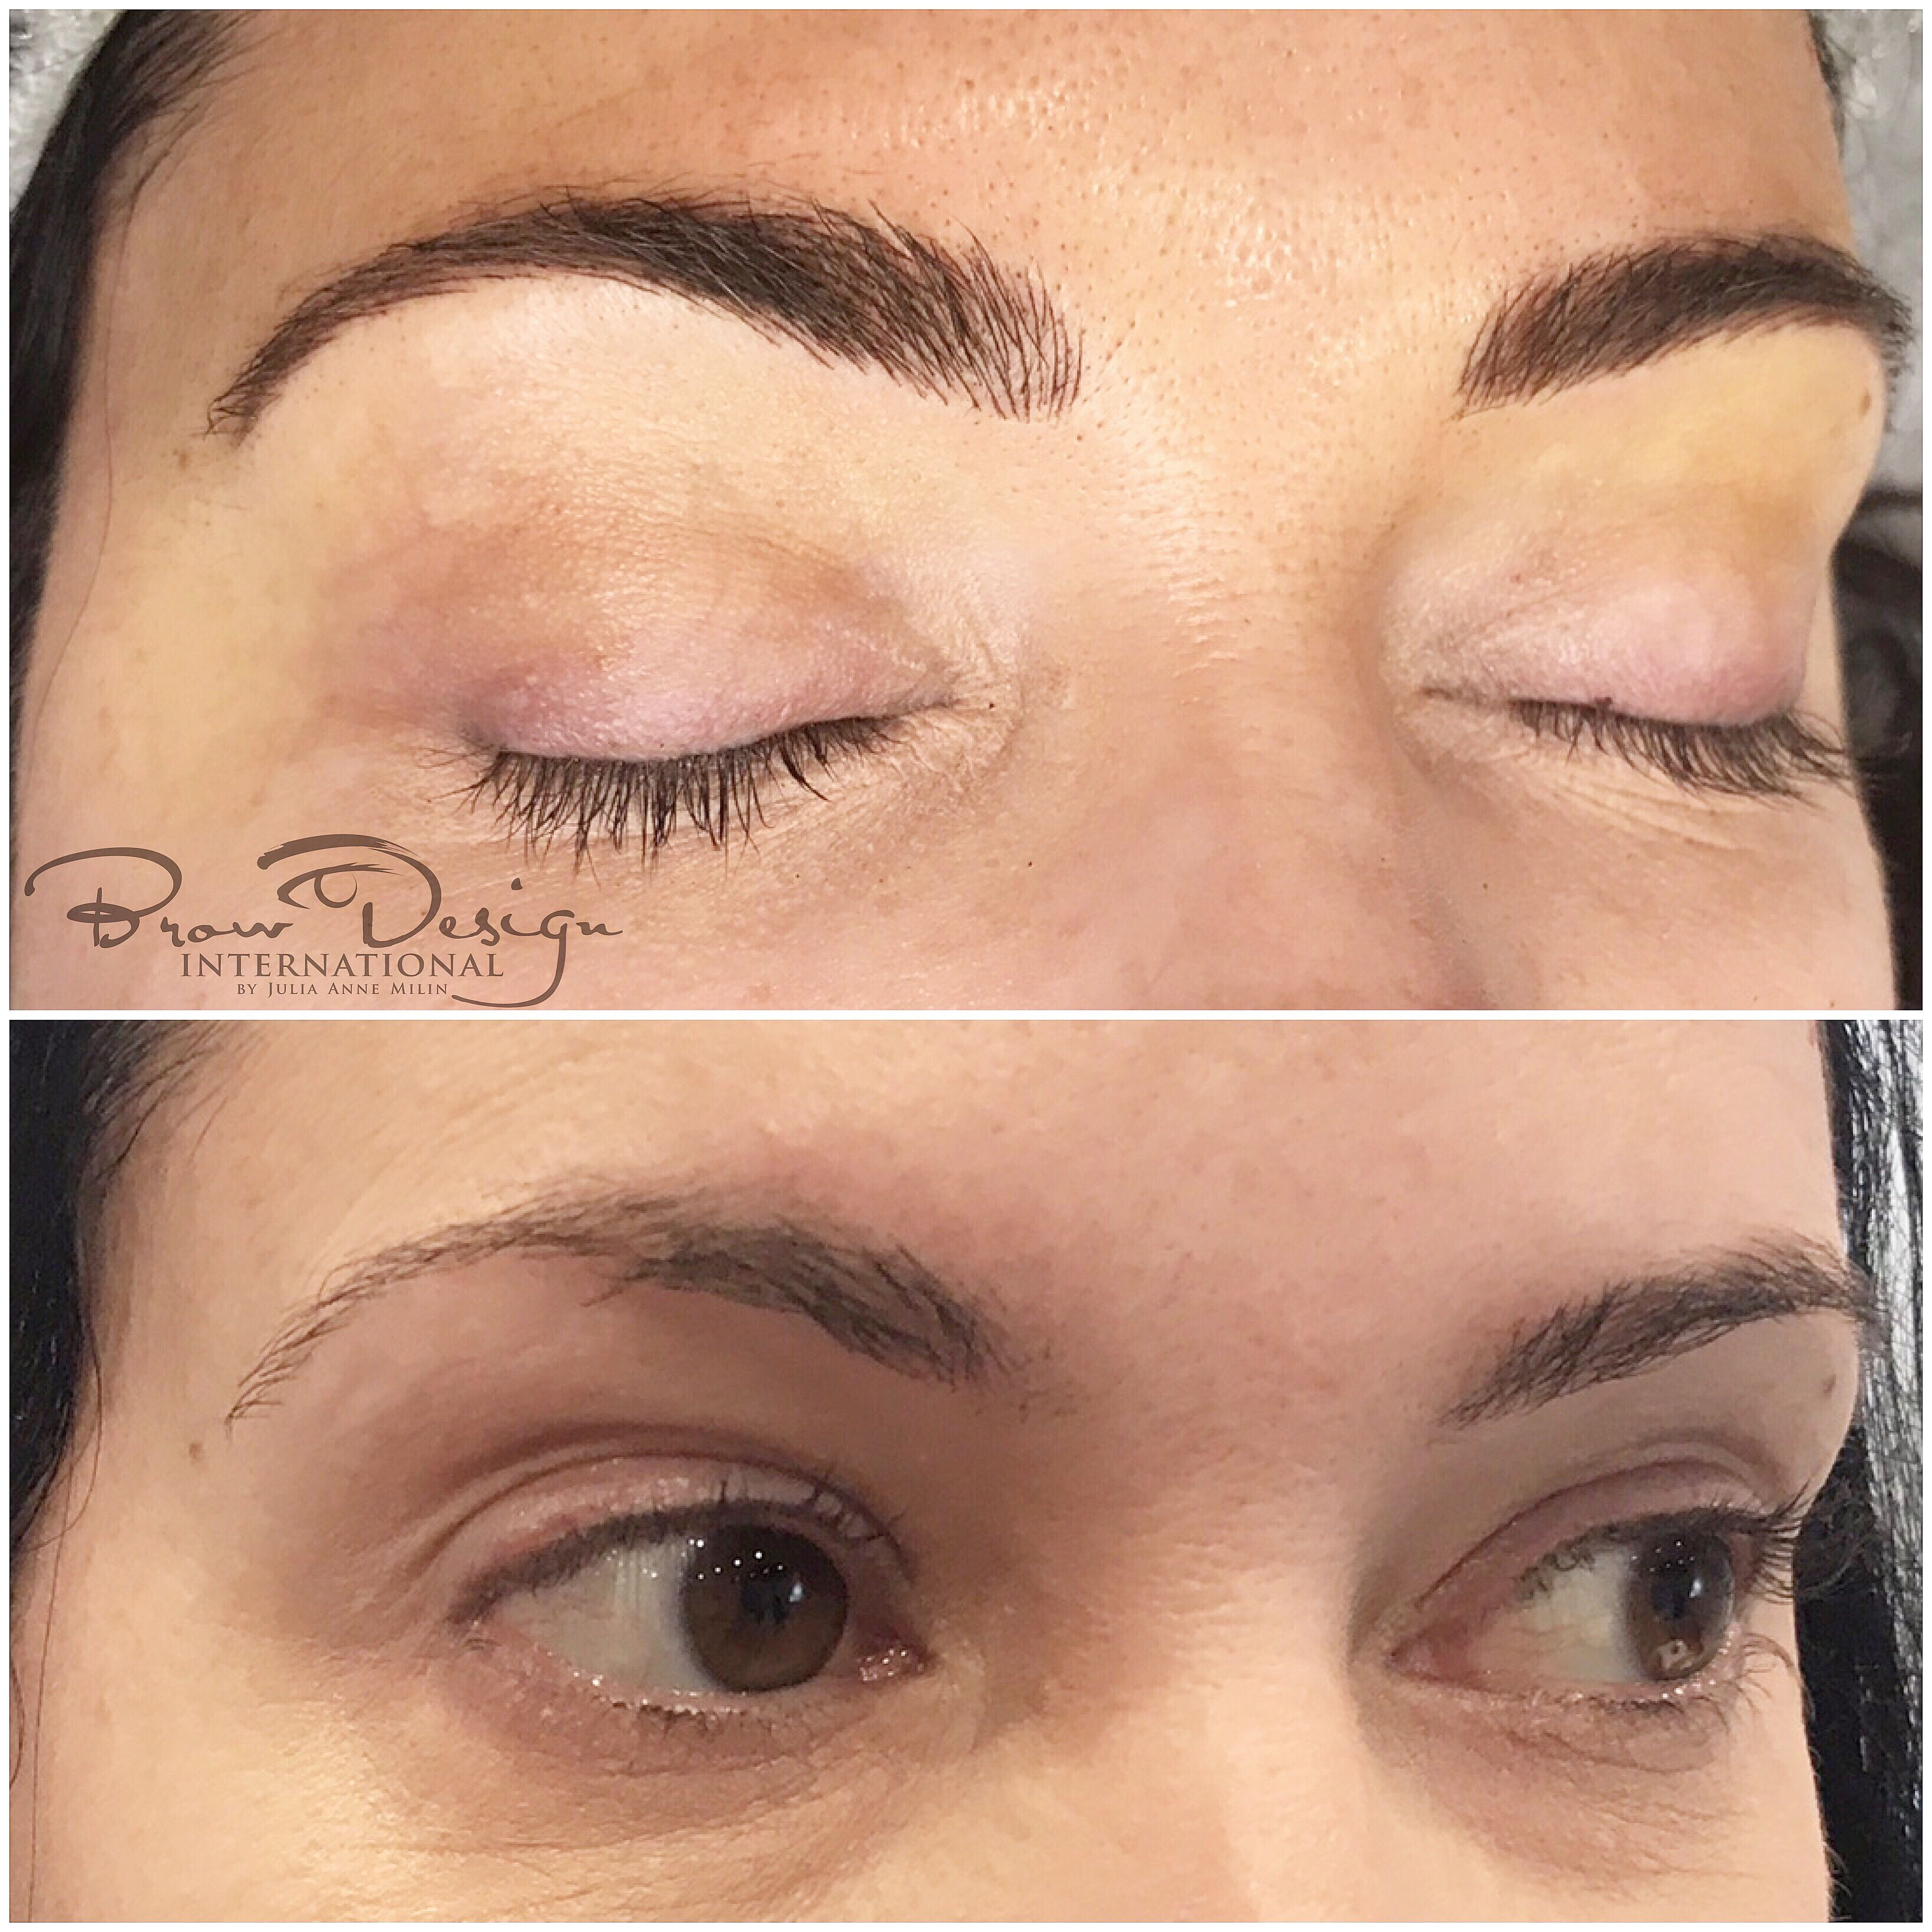 What Microblading looks like before and after Permanent